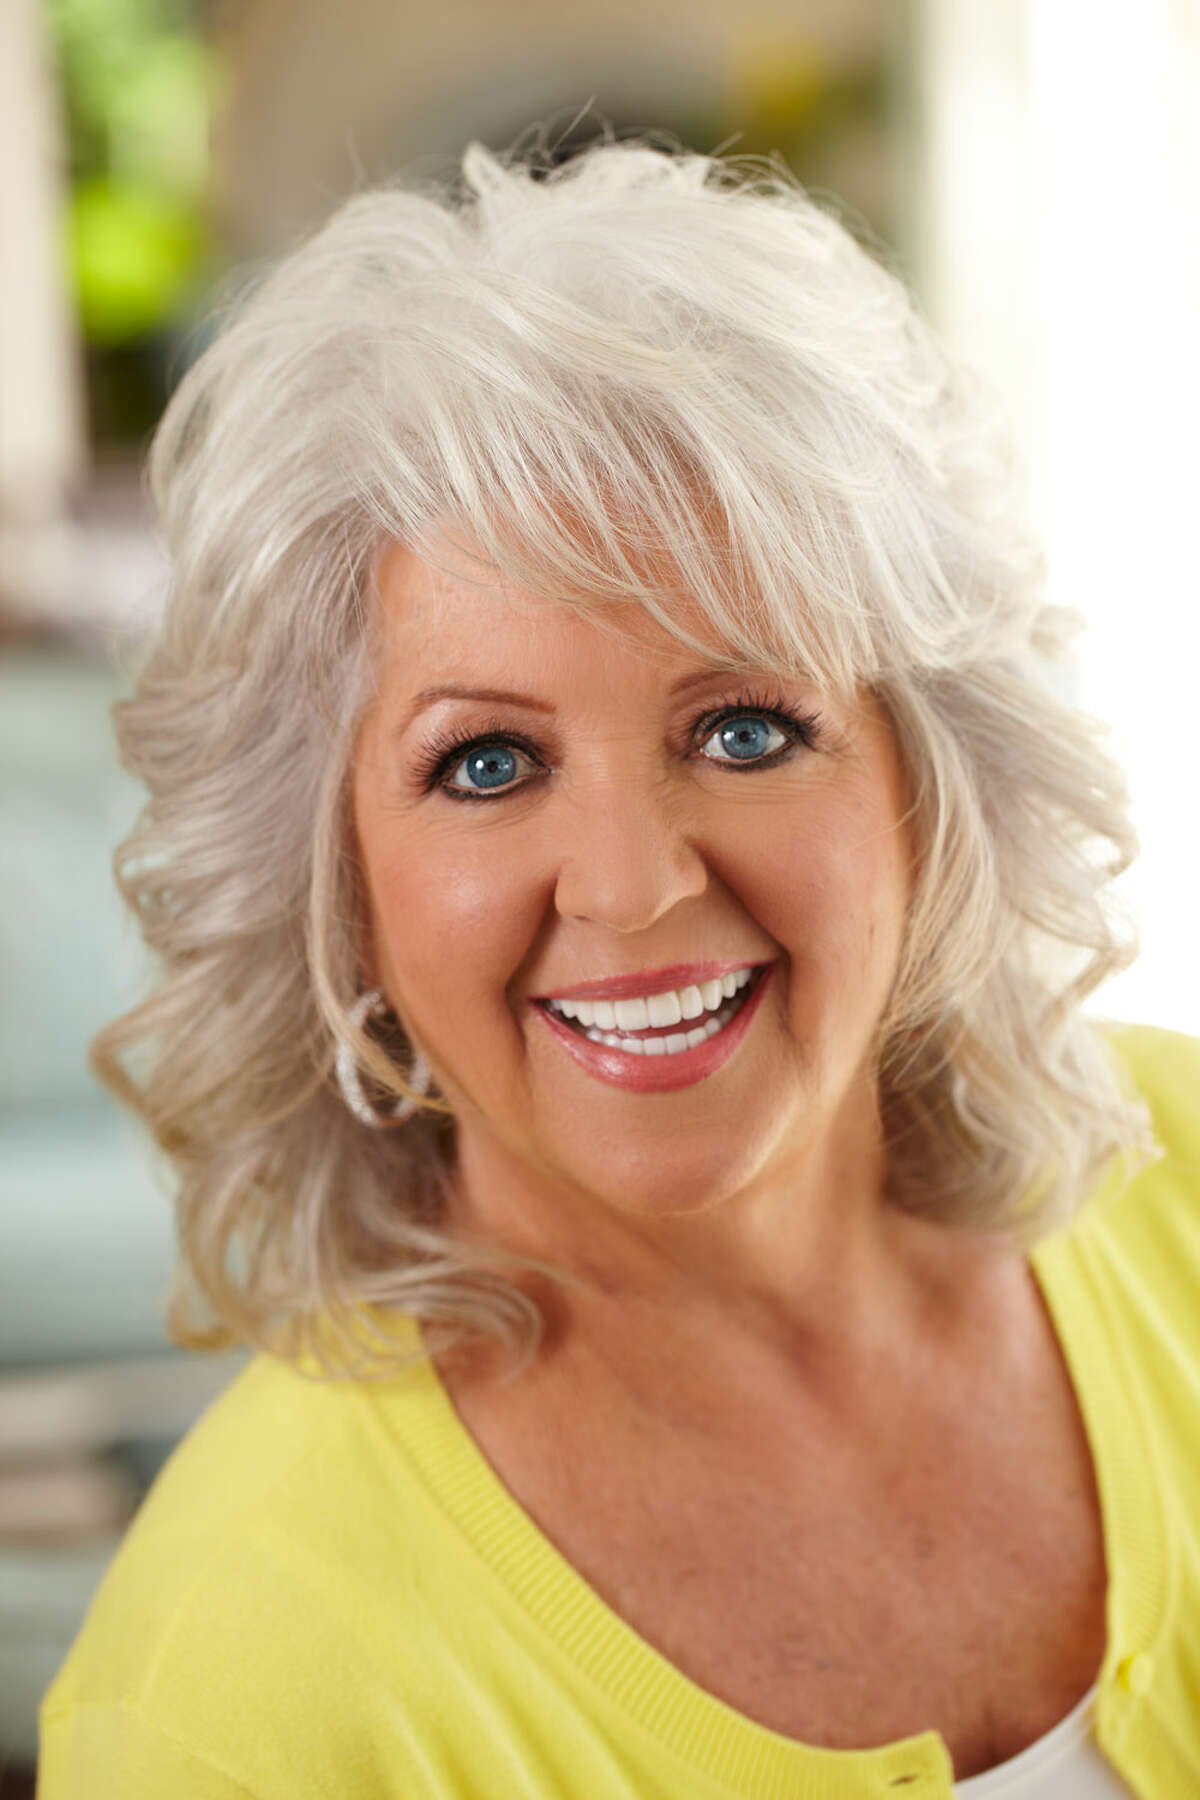 Food Network celebrity and author Paula Deen